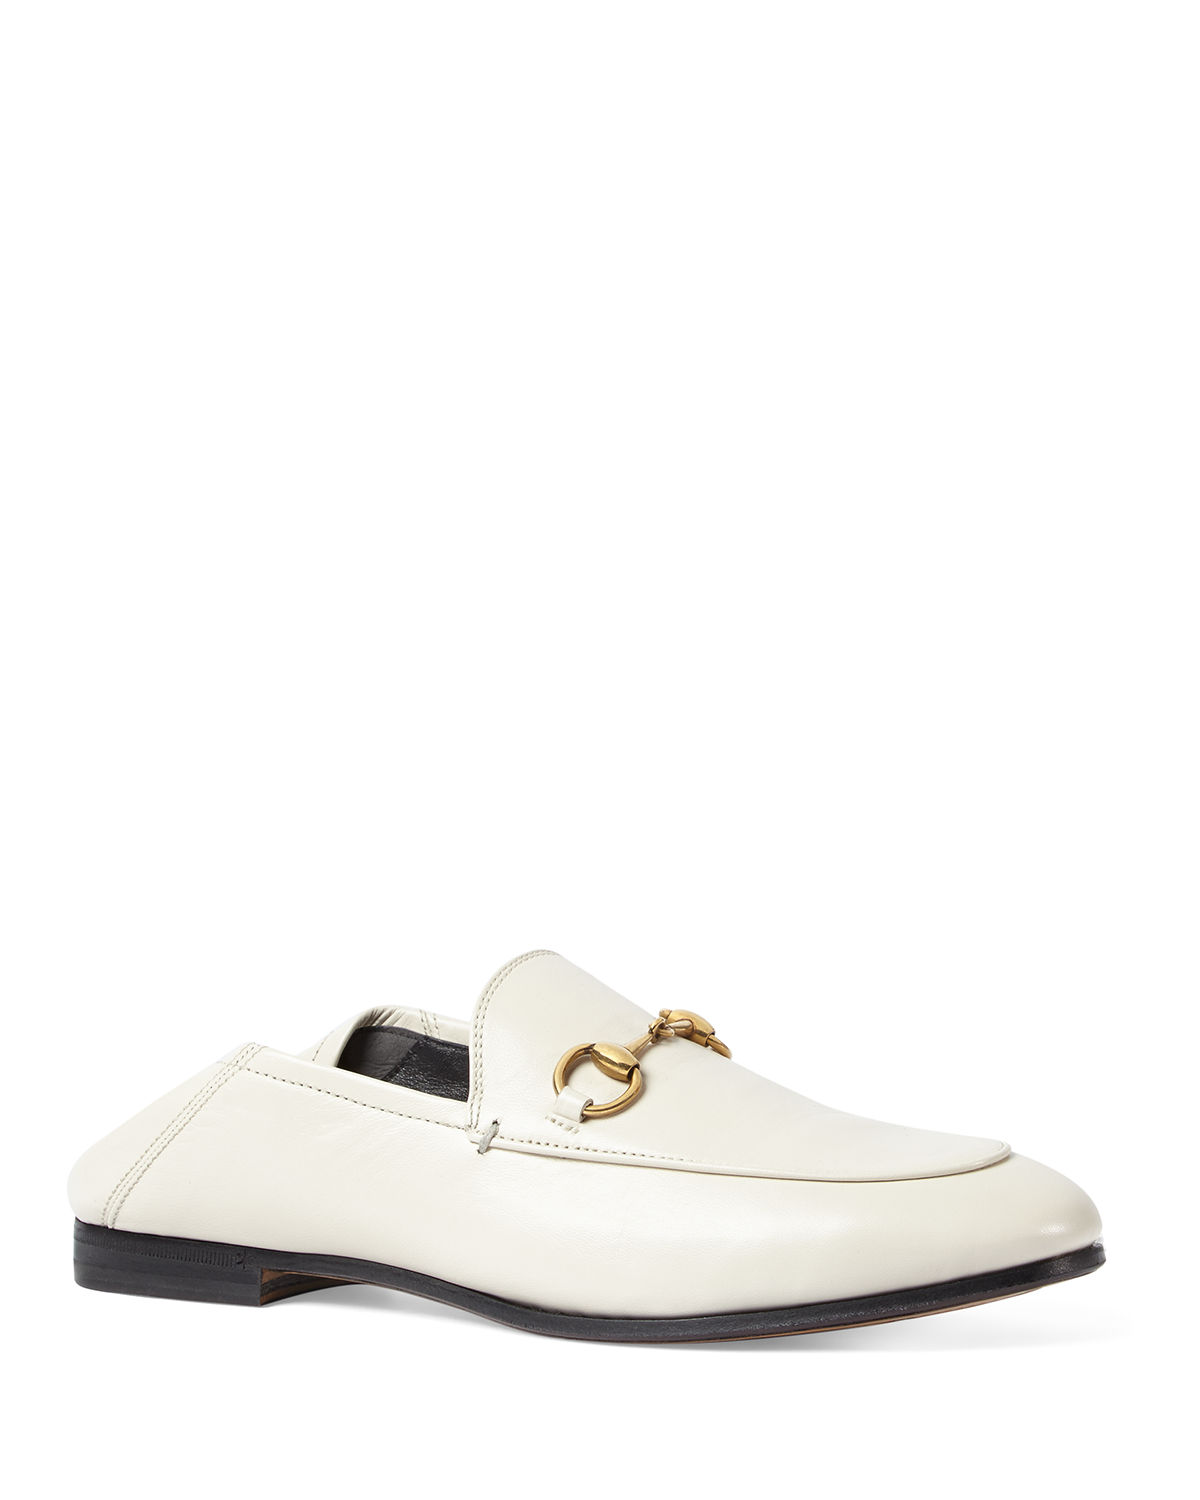 10mm Brixton Leather Loafer